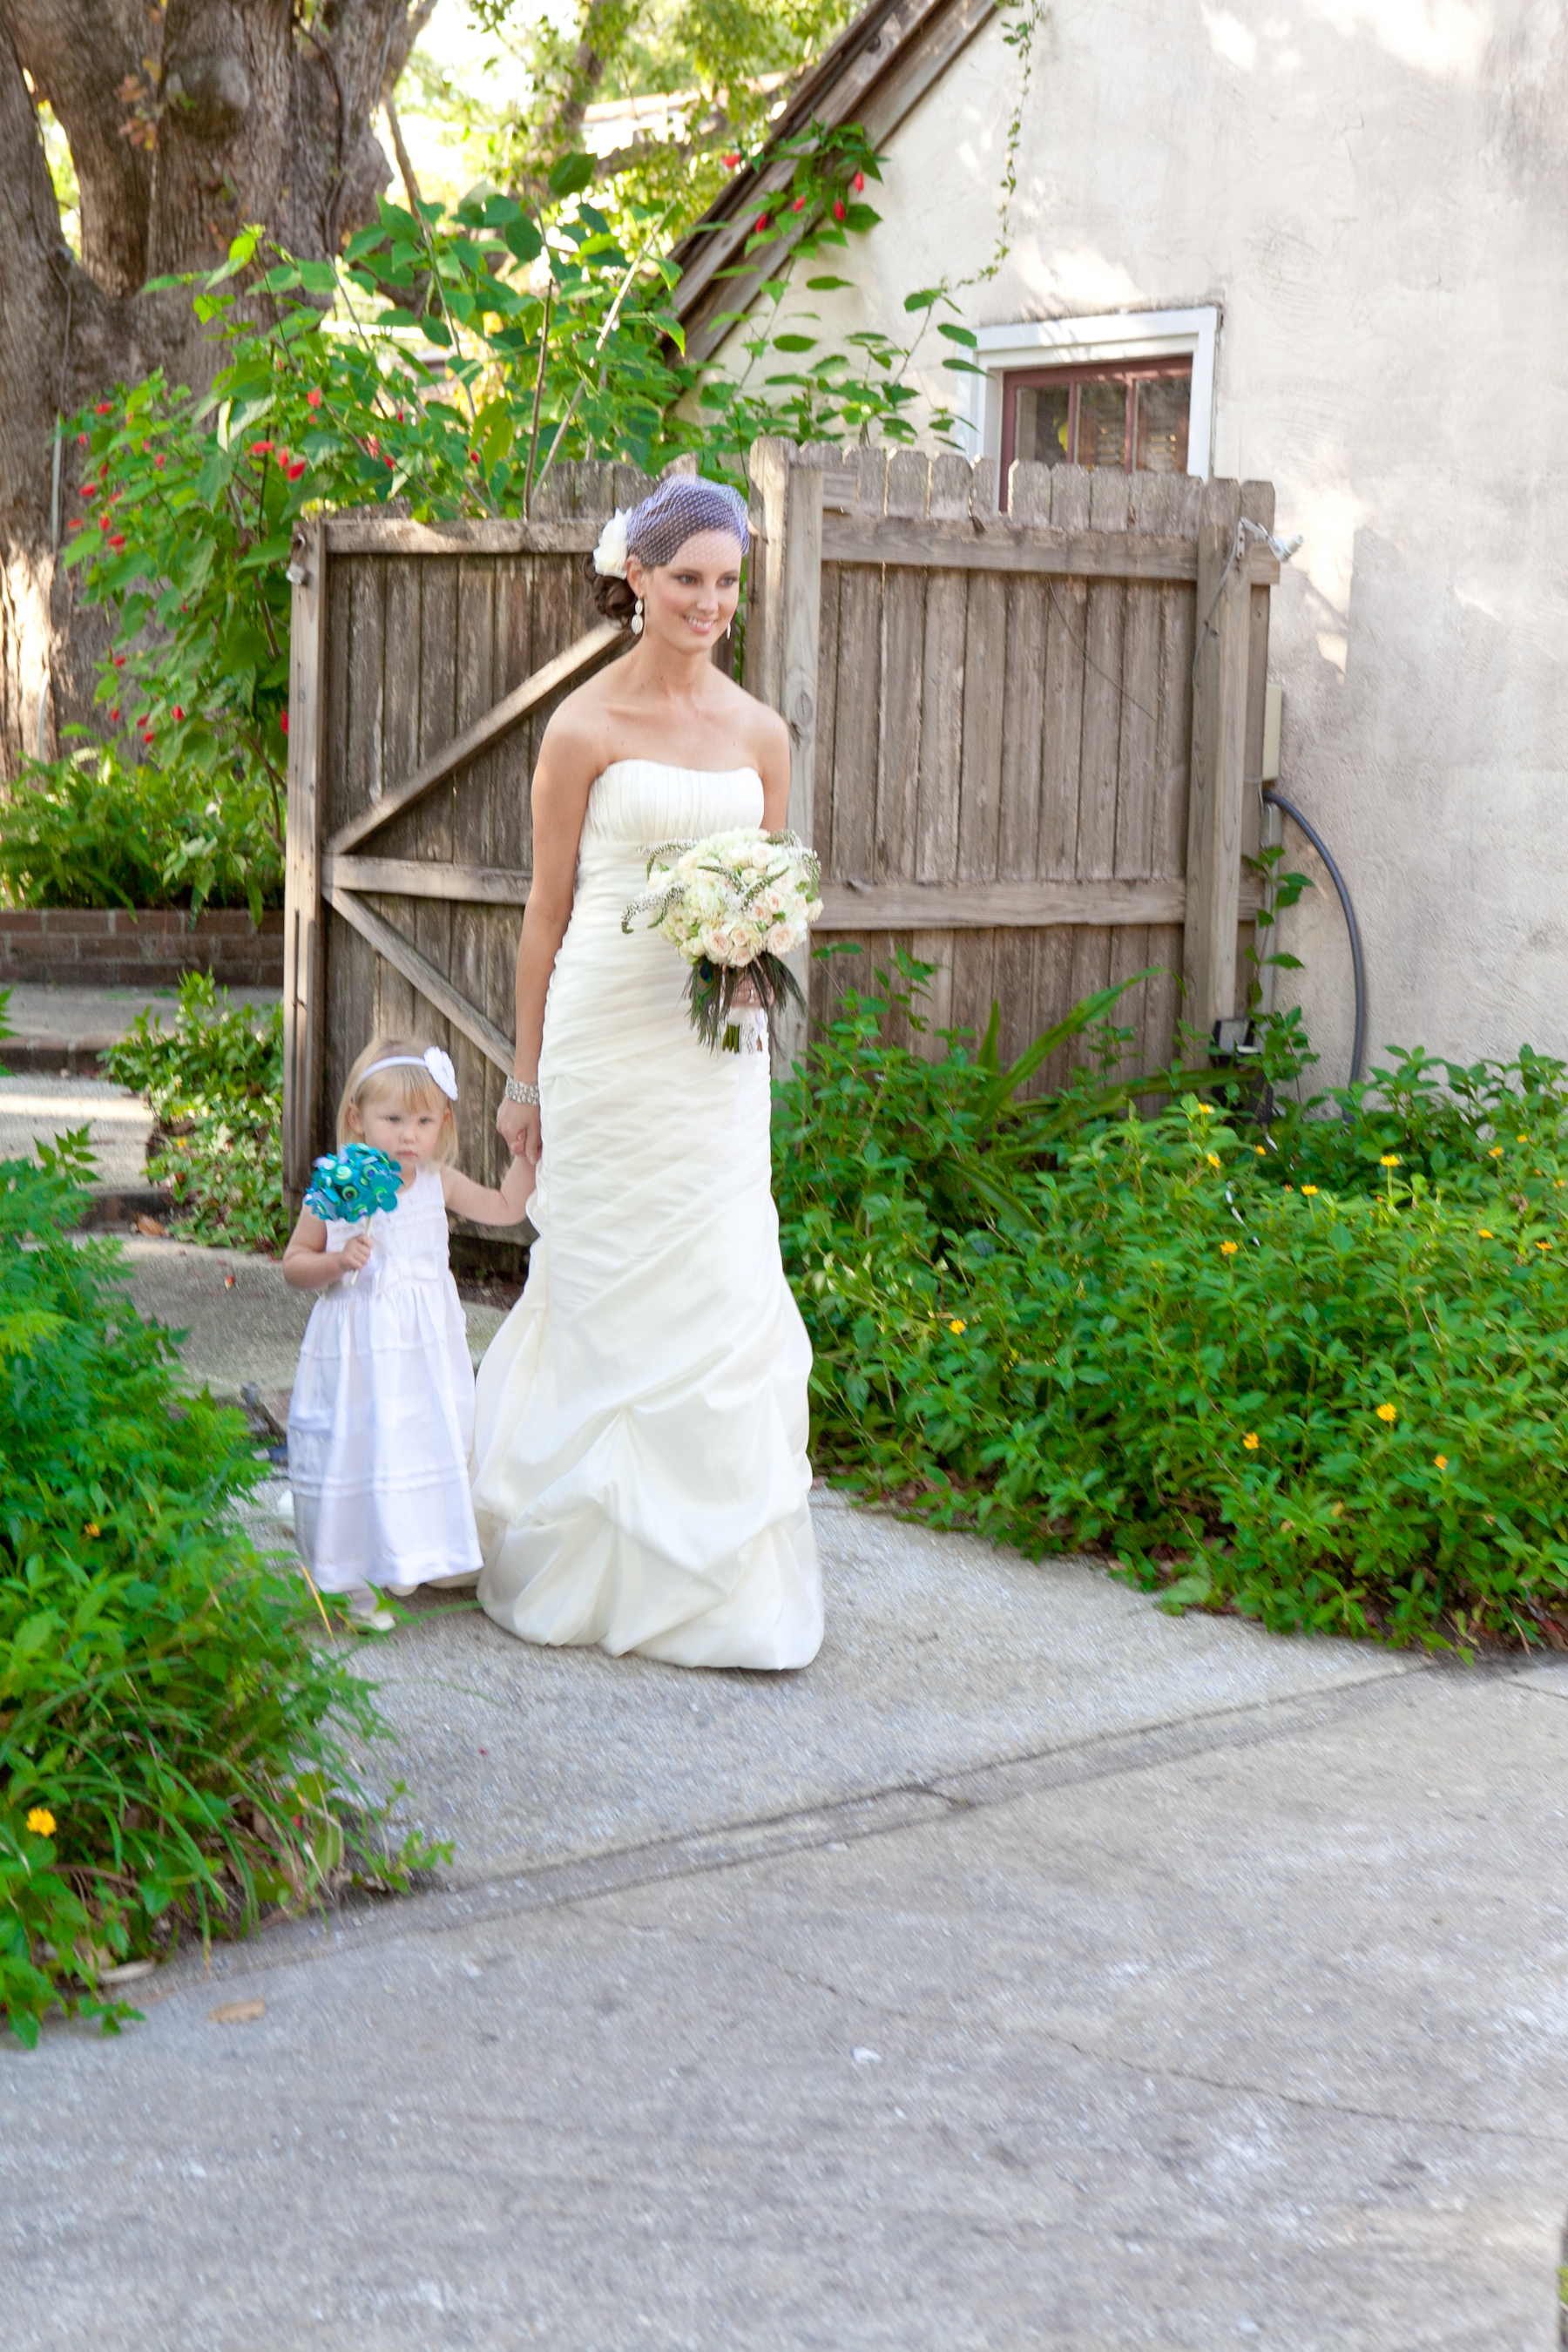 Madilyn practiced being the flower girl for almost a year. At this moment she quit her job and decided to walk me down the aisle. It is one of the best memories of my entire life.